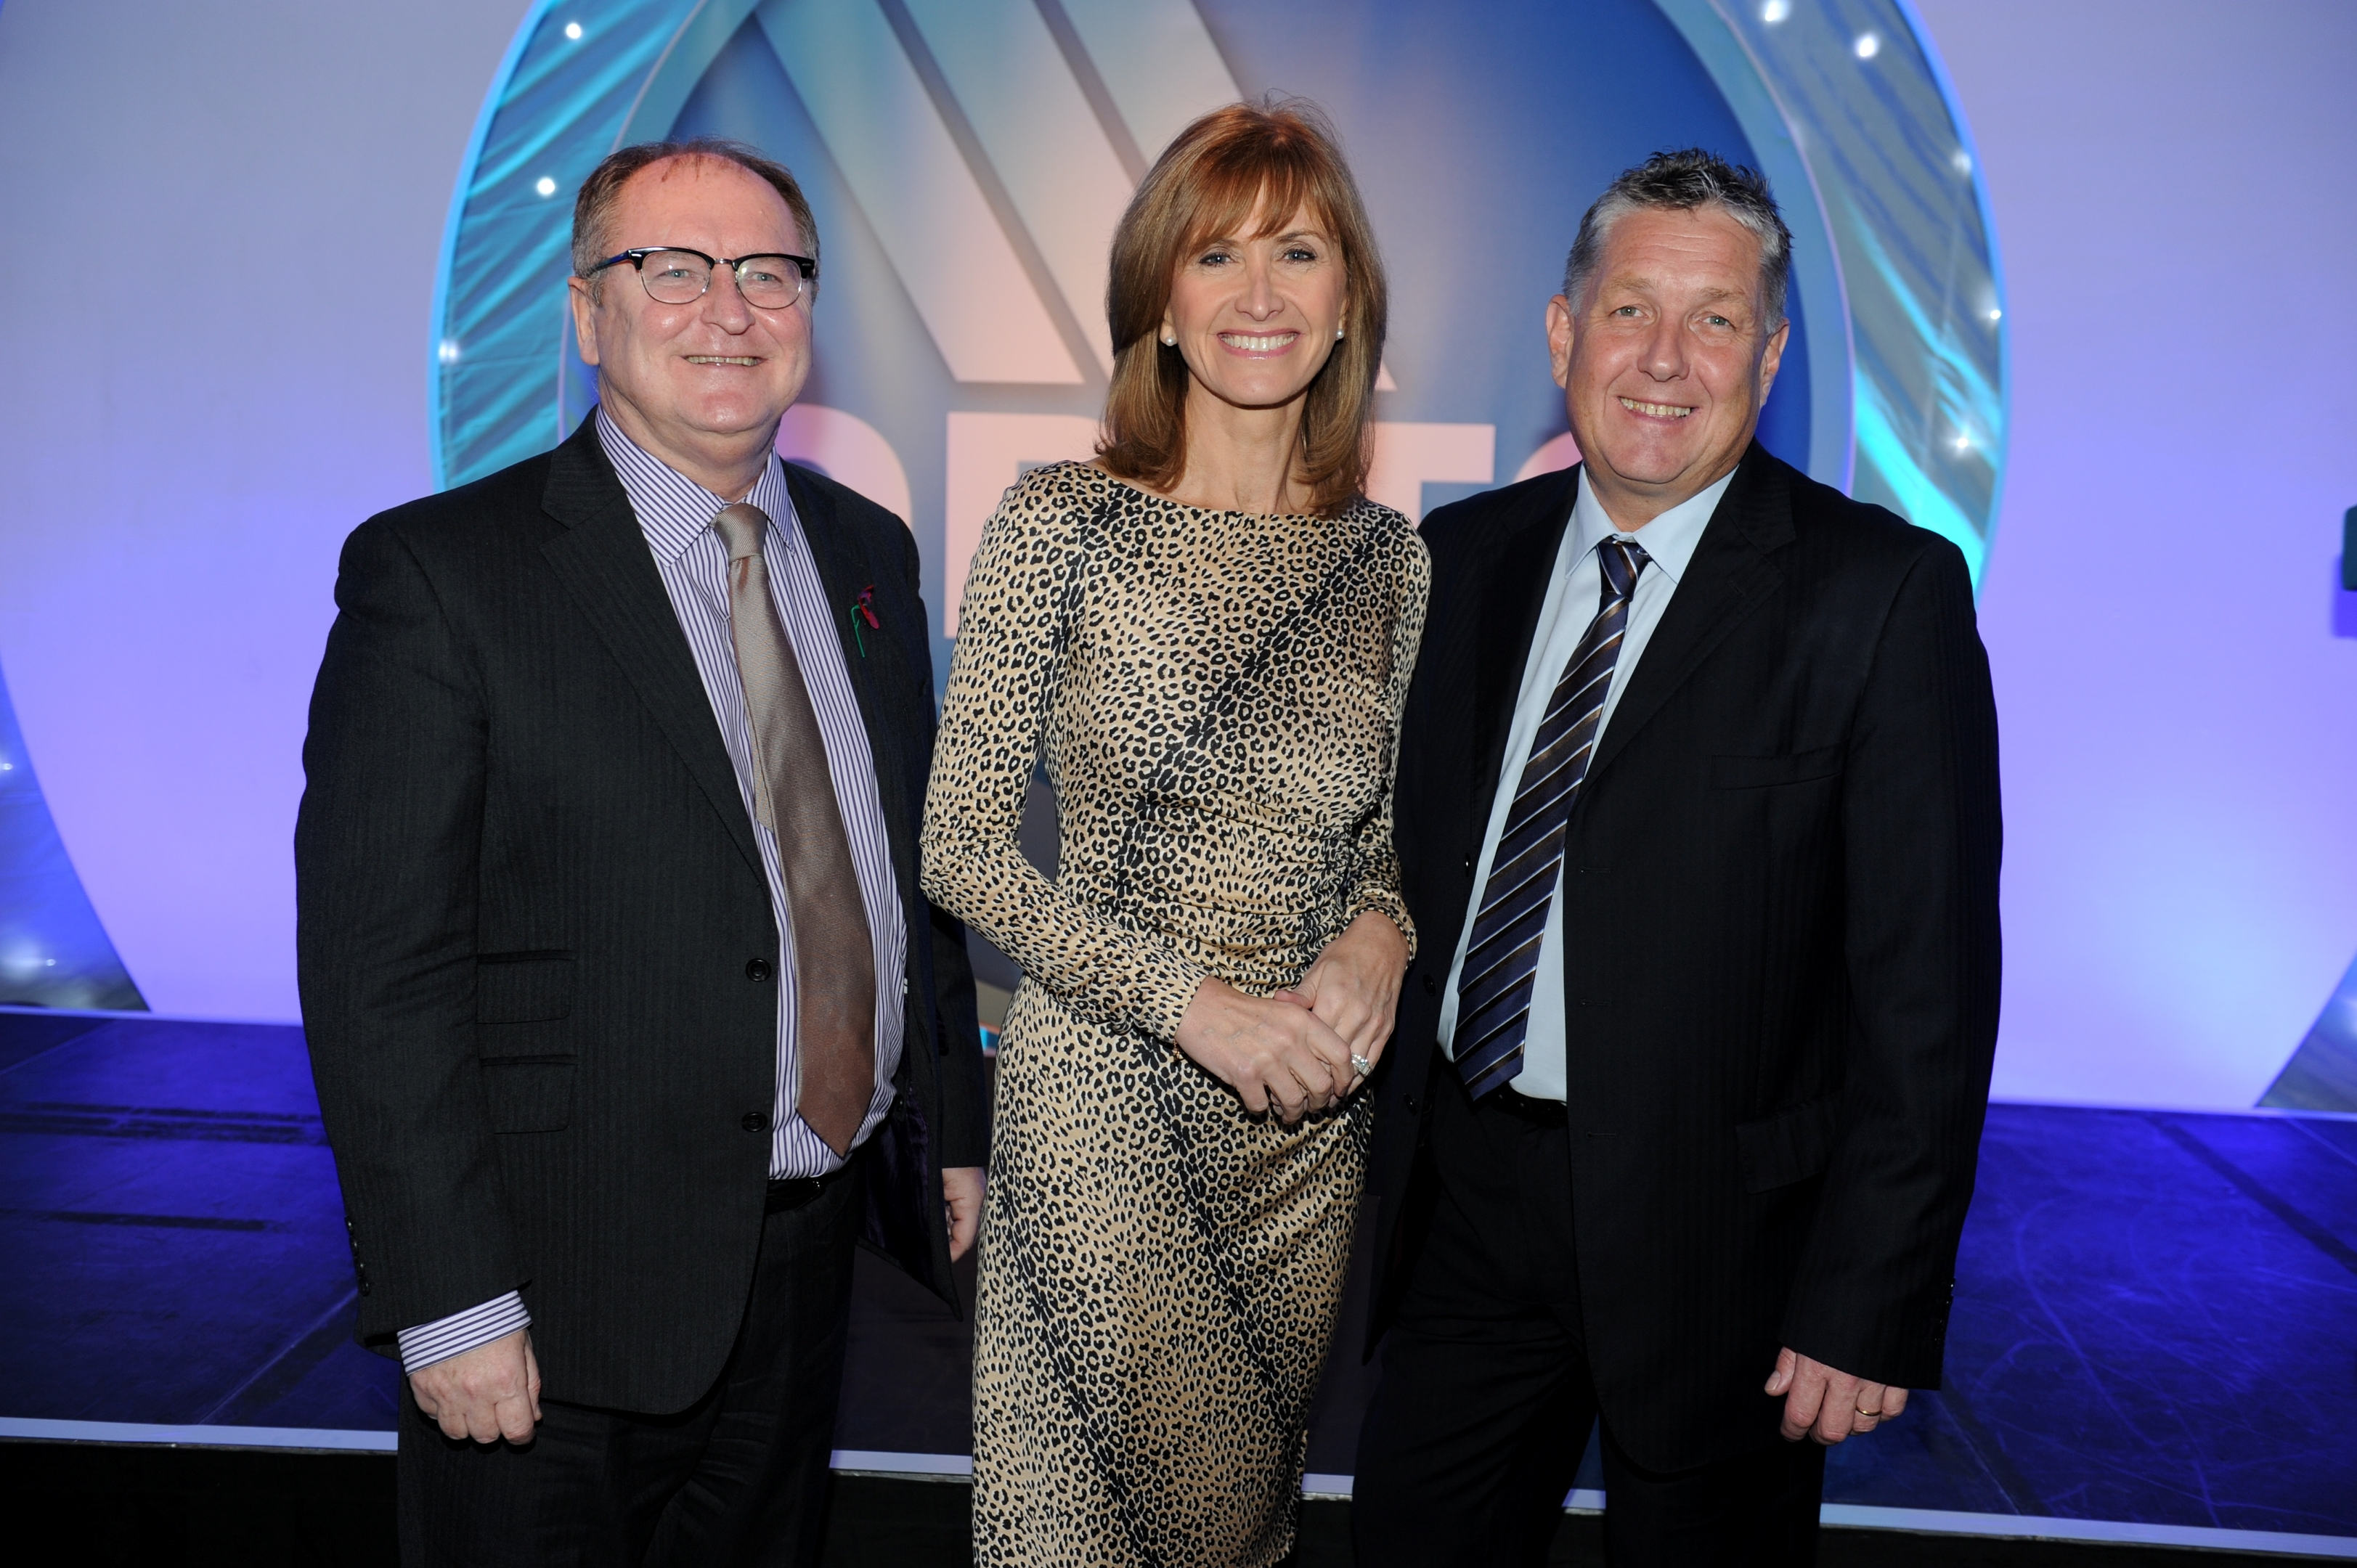 Managing director of Opito, John McDonald with broadcaster Jackie Bird and chief executive David Doig